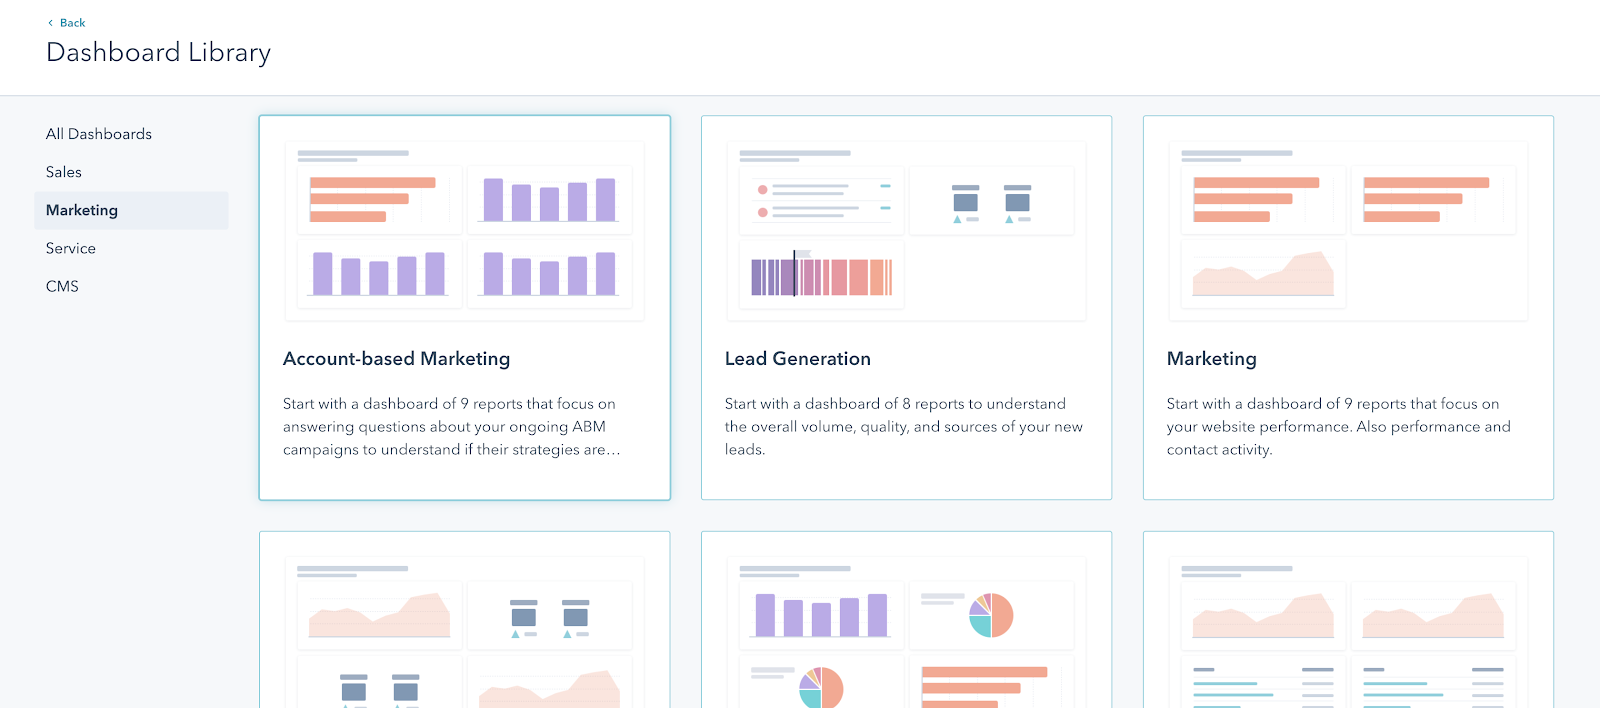 Screenshot of the Dashboard Library with tiles for Account-based Marketing, Lead Generation, Marketing, and more.